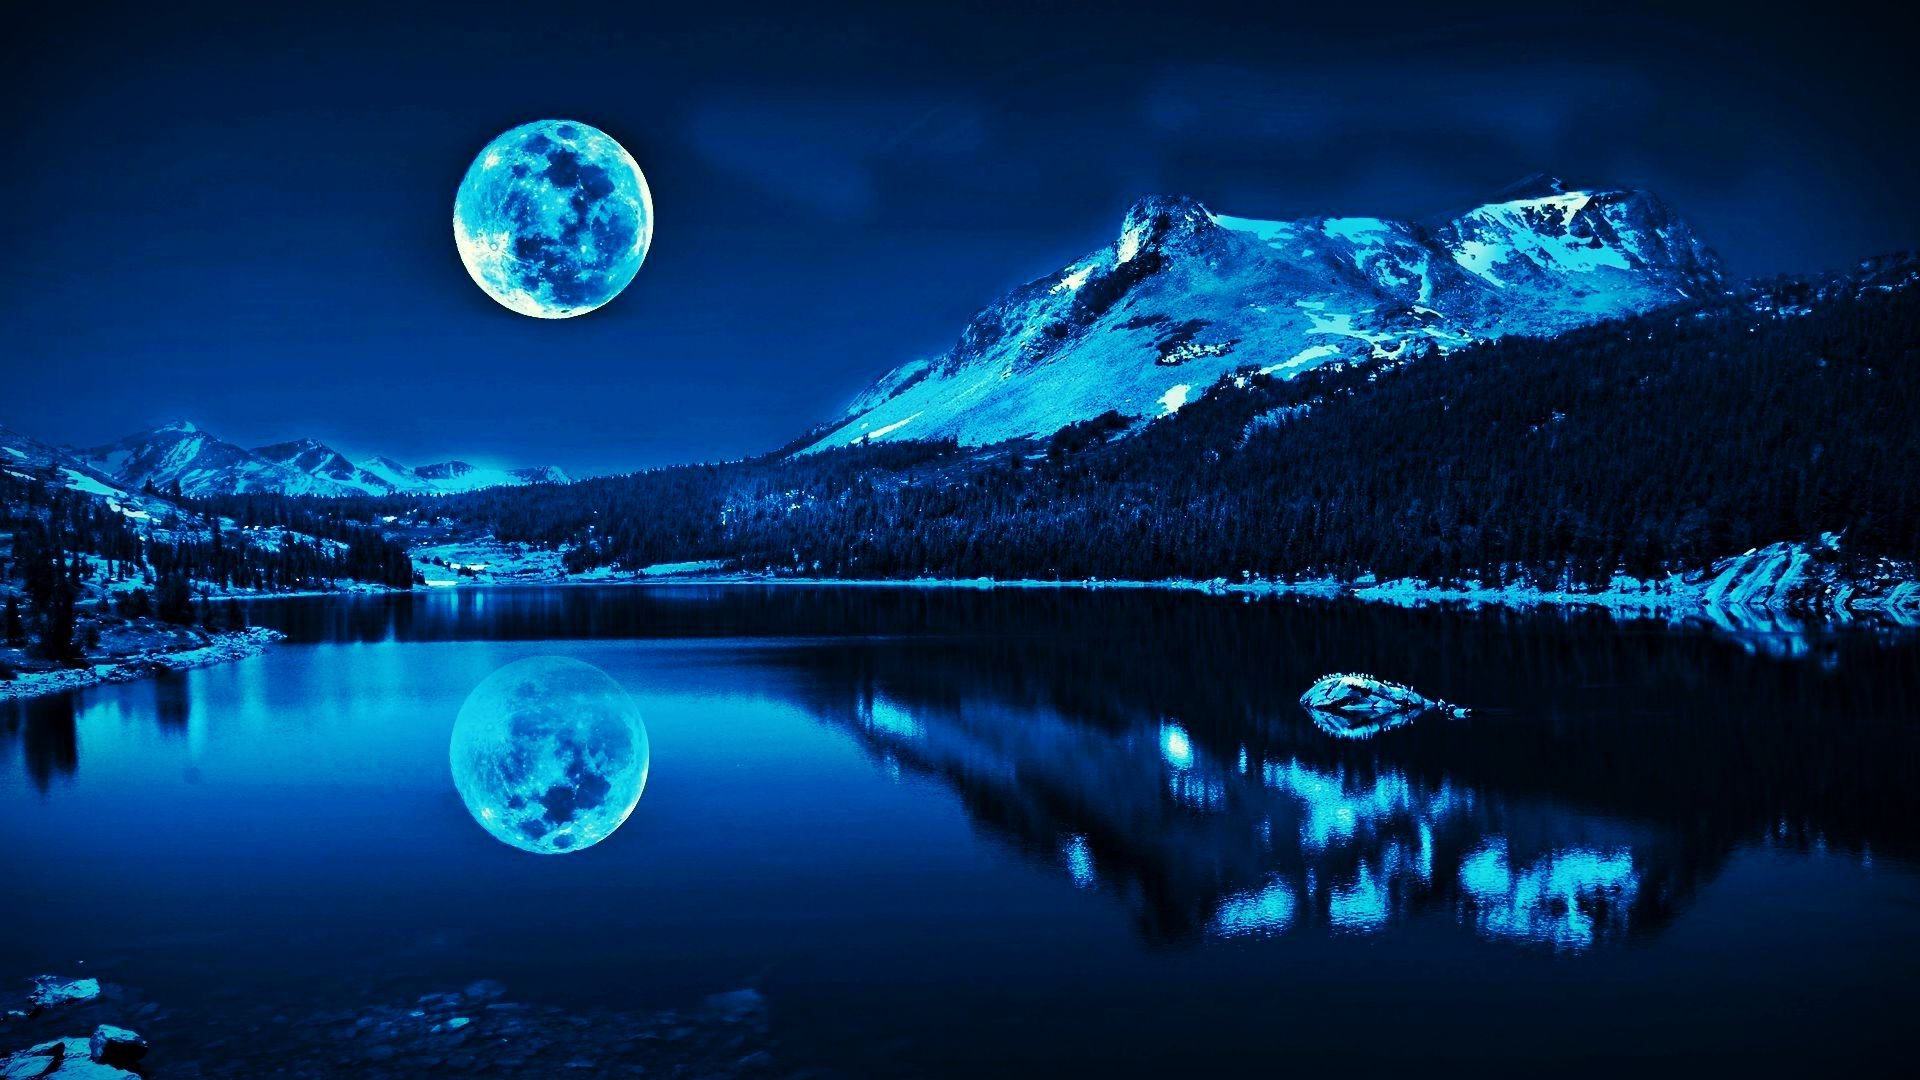 pics photos the blue moon wallpaper download the free